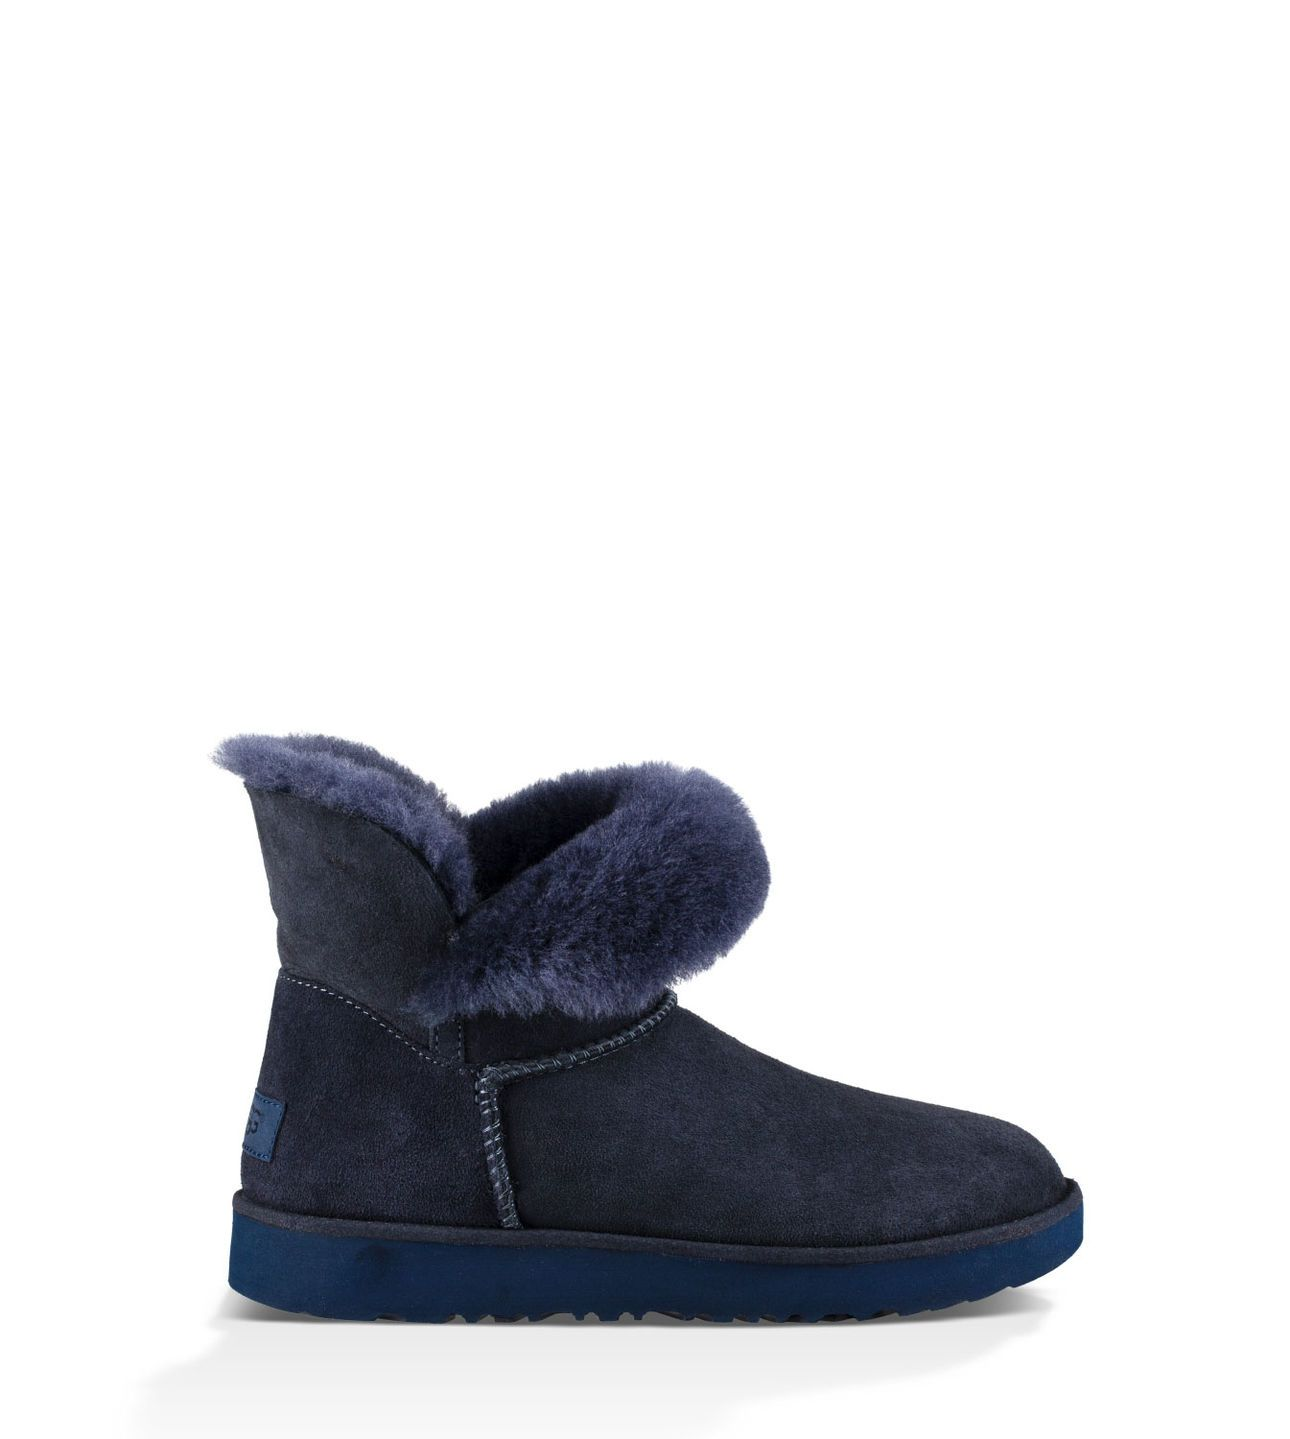 75bc44ae7f9c Shop our collection of women's sheepskin boots including the Classic Cuff  Mini. Free Shipping & Free Returns on Authentic UGG® cuff boots for women  at ...